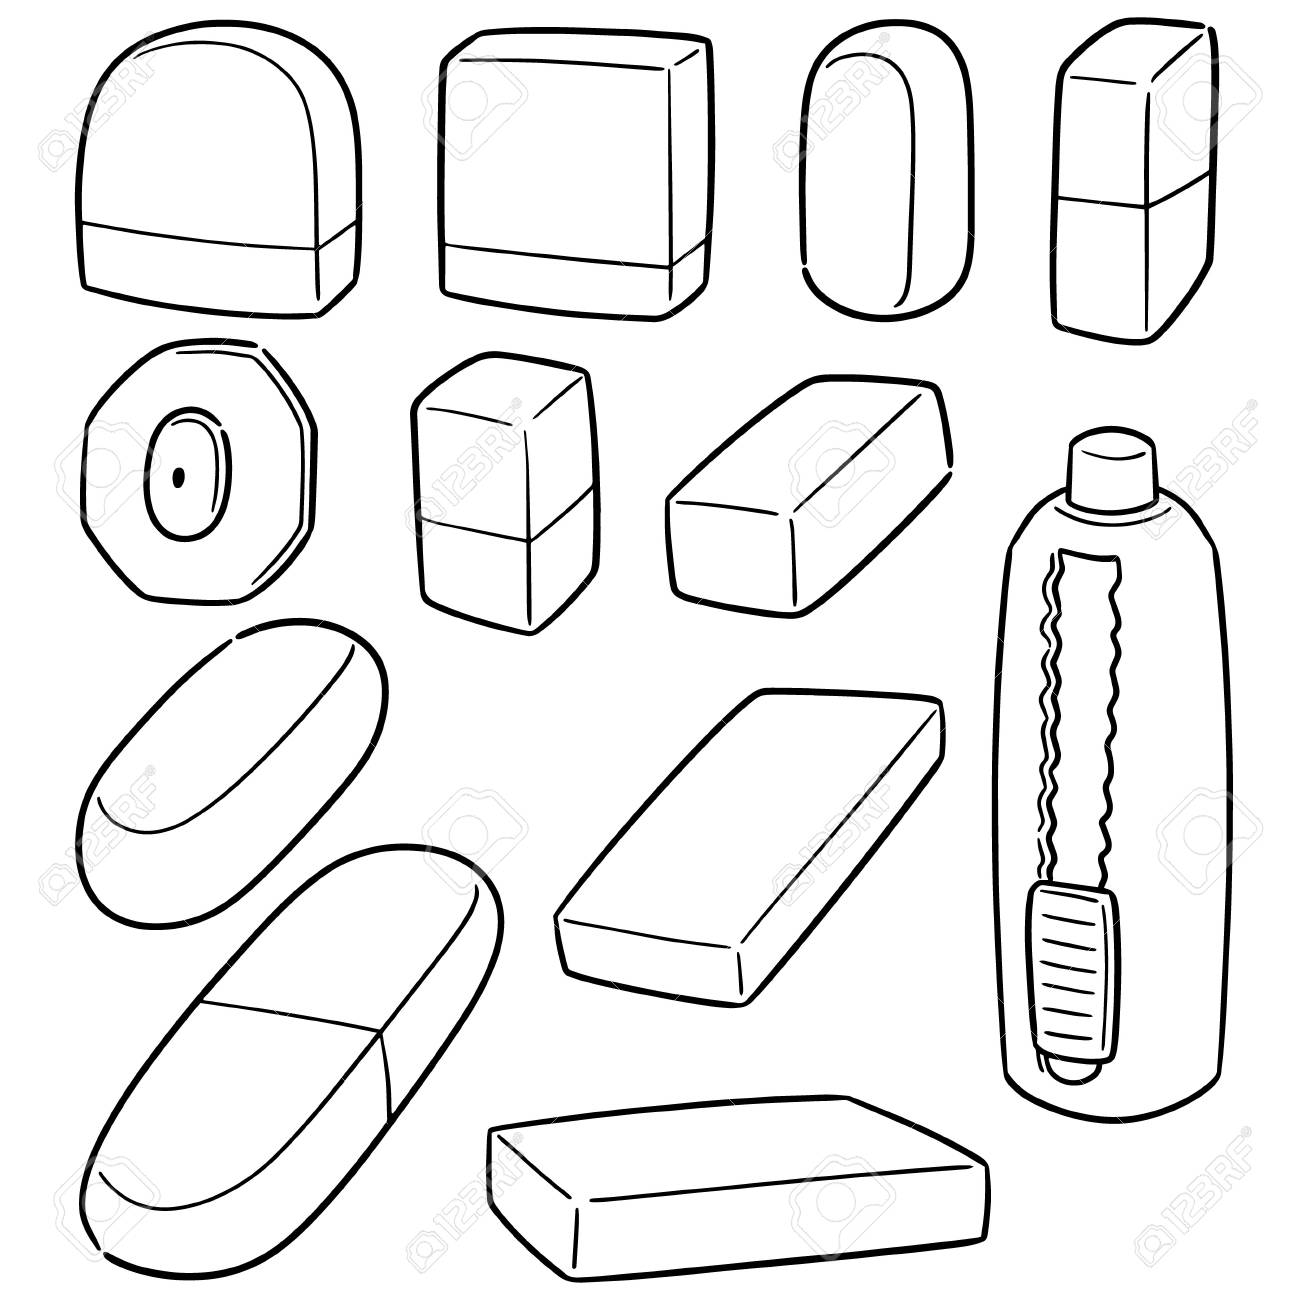 vector set of eraser royalty free cliparts vectors and stock illustration image 110069986 vector set of eraser